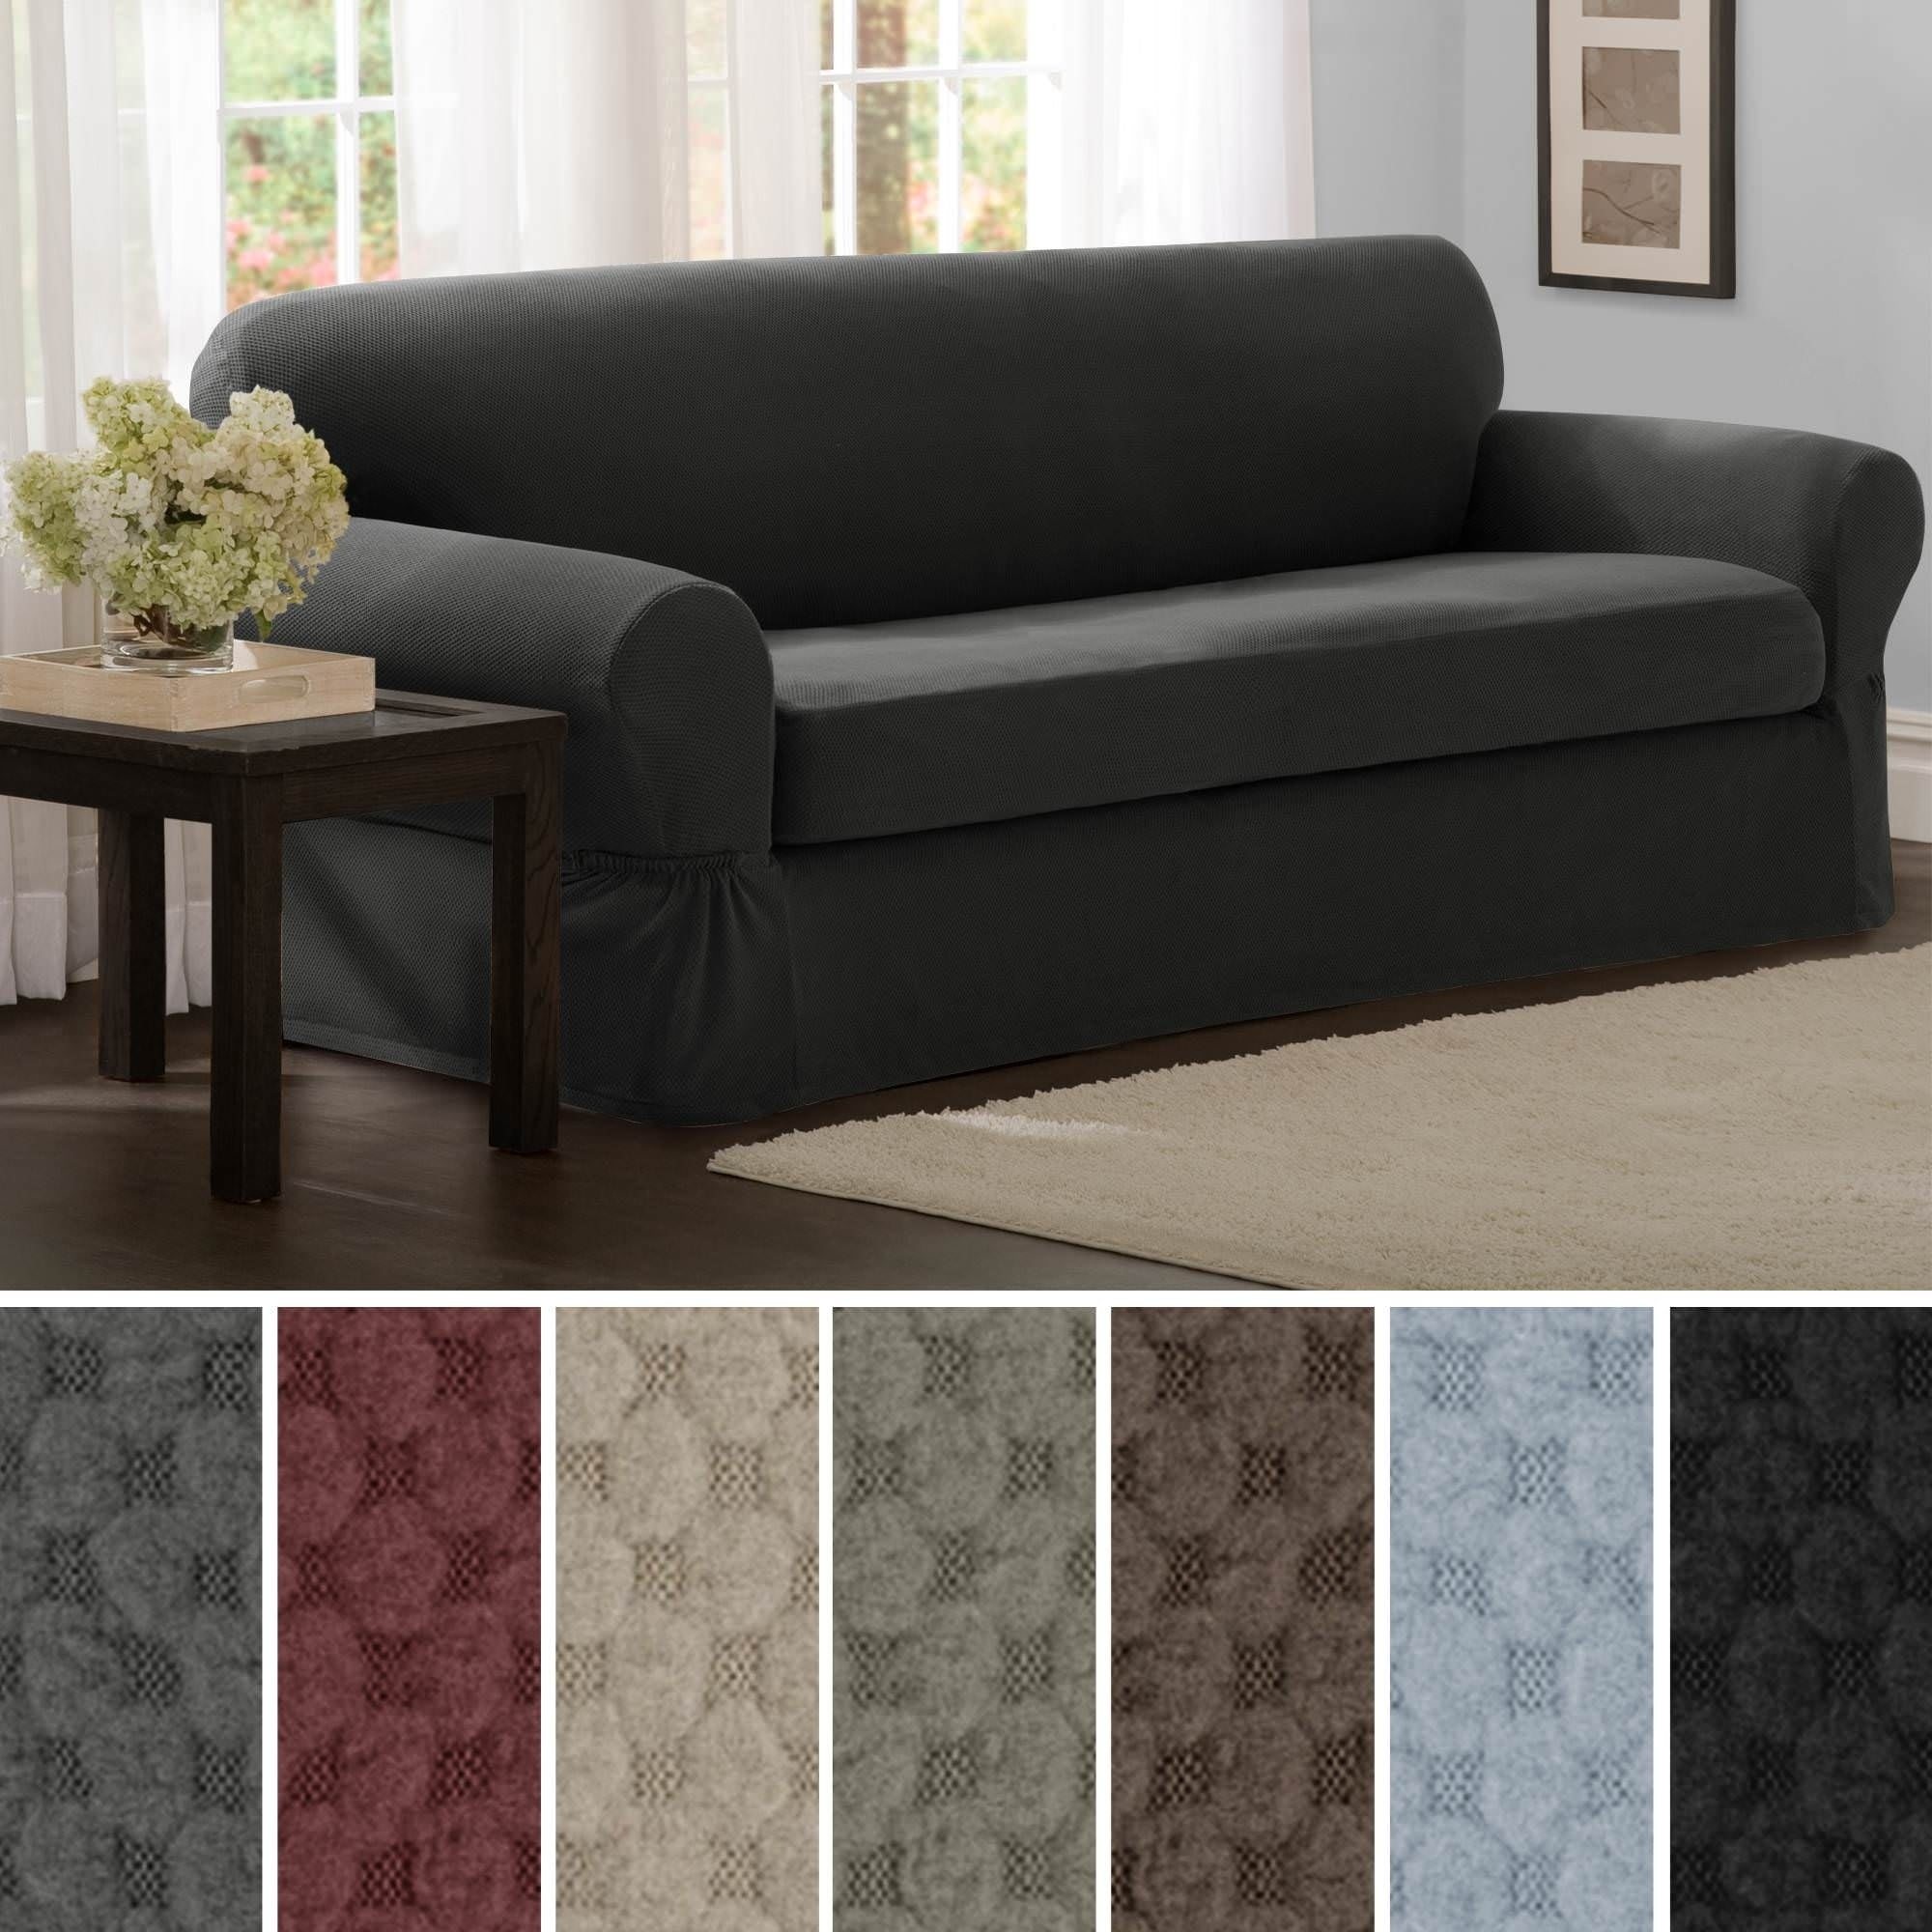 Maytex Stretch 2 Piece Pixel Sofa Slipcover Furniture Cover Ebay